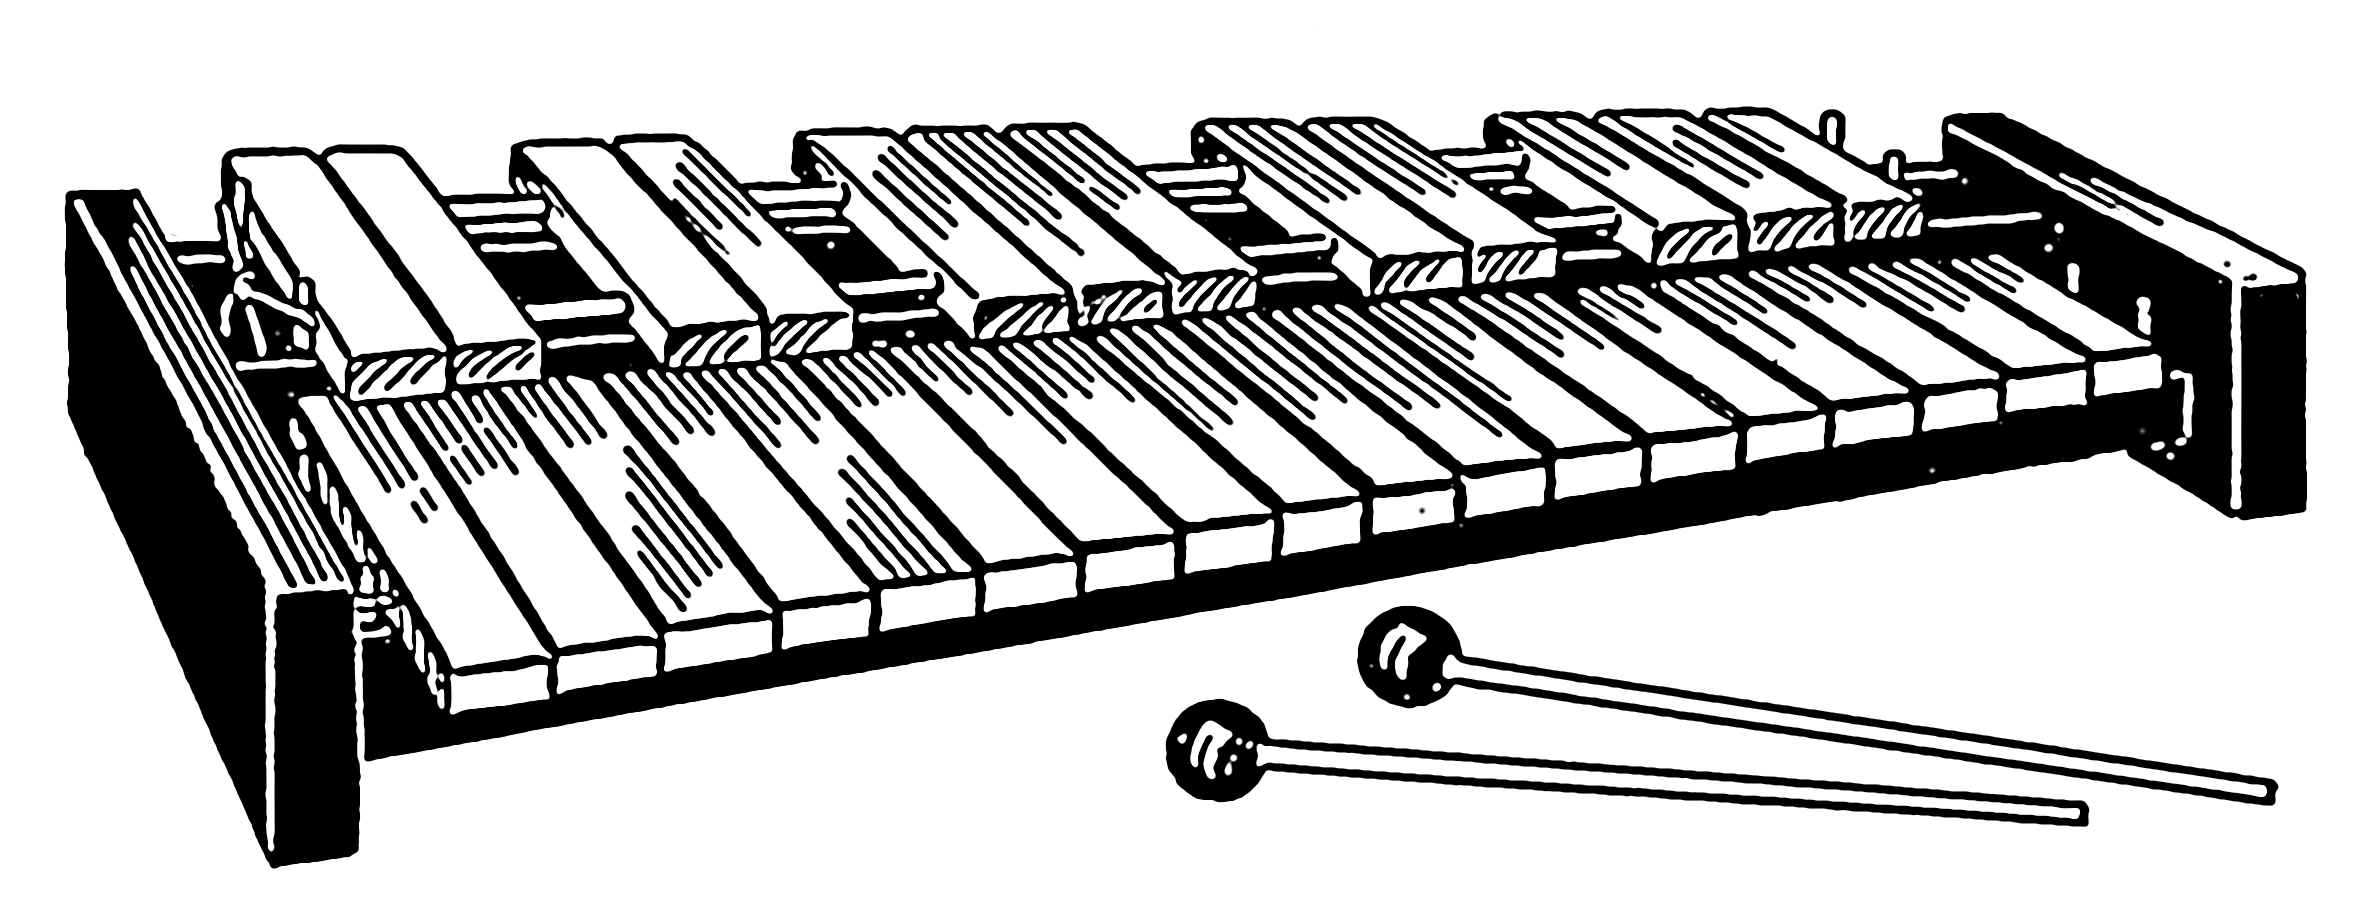 Line Art Xylophone : File xylophone psf